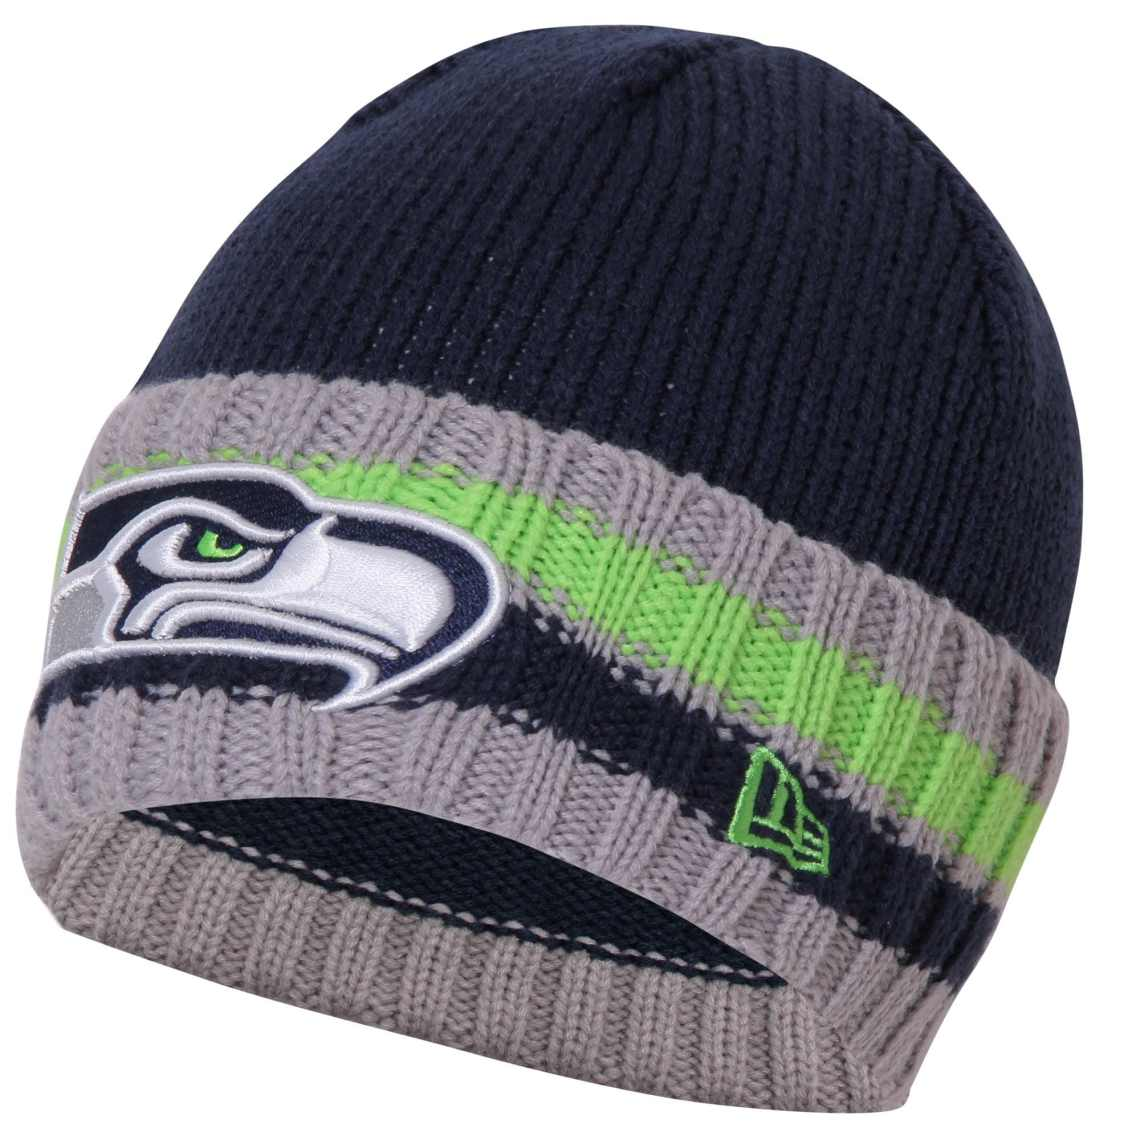 Seattle Seahawks New Era Gray Cuff Striper Knit Beanie - College Navy